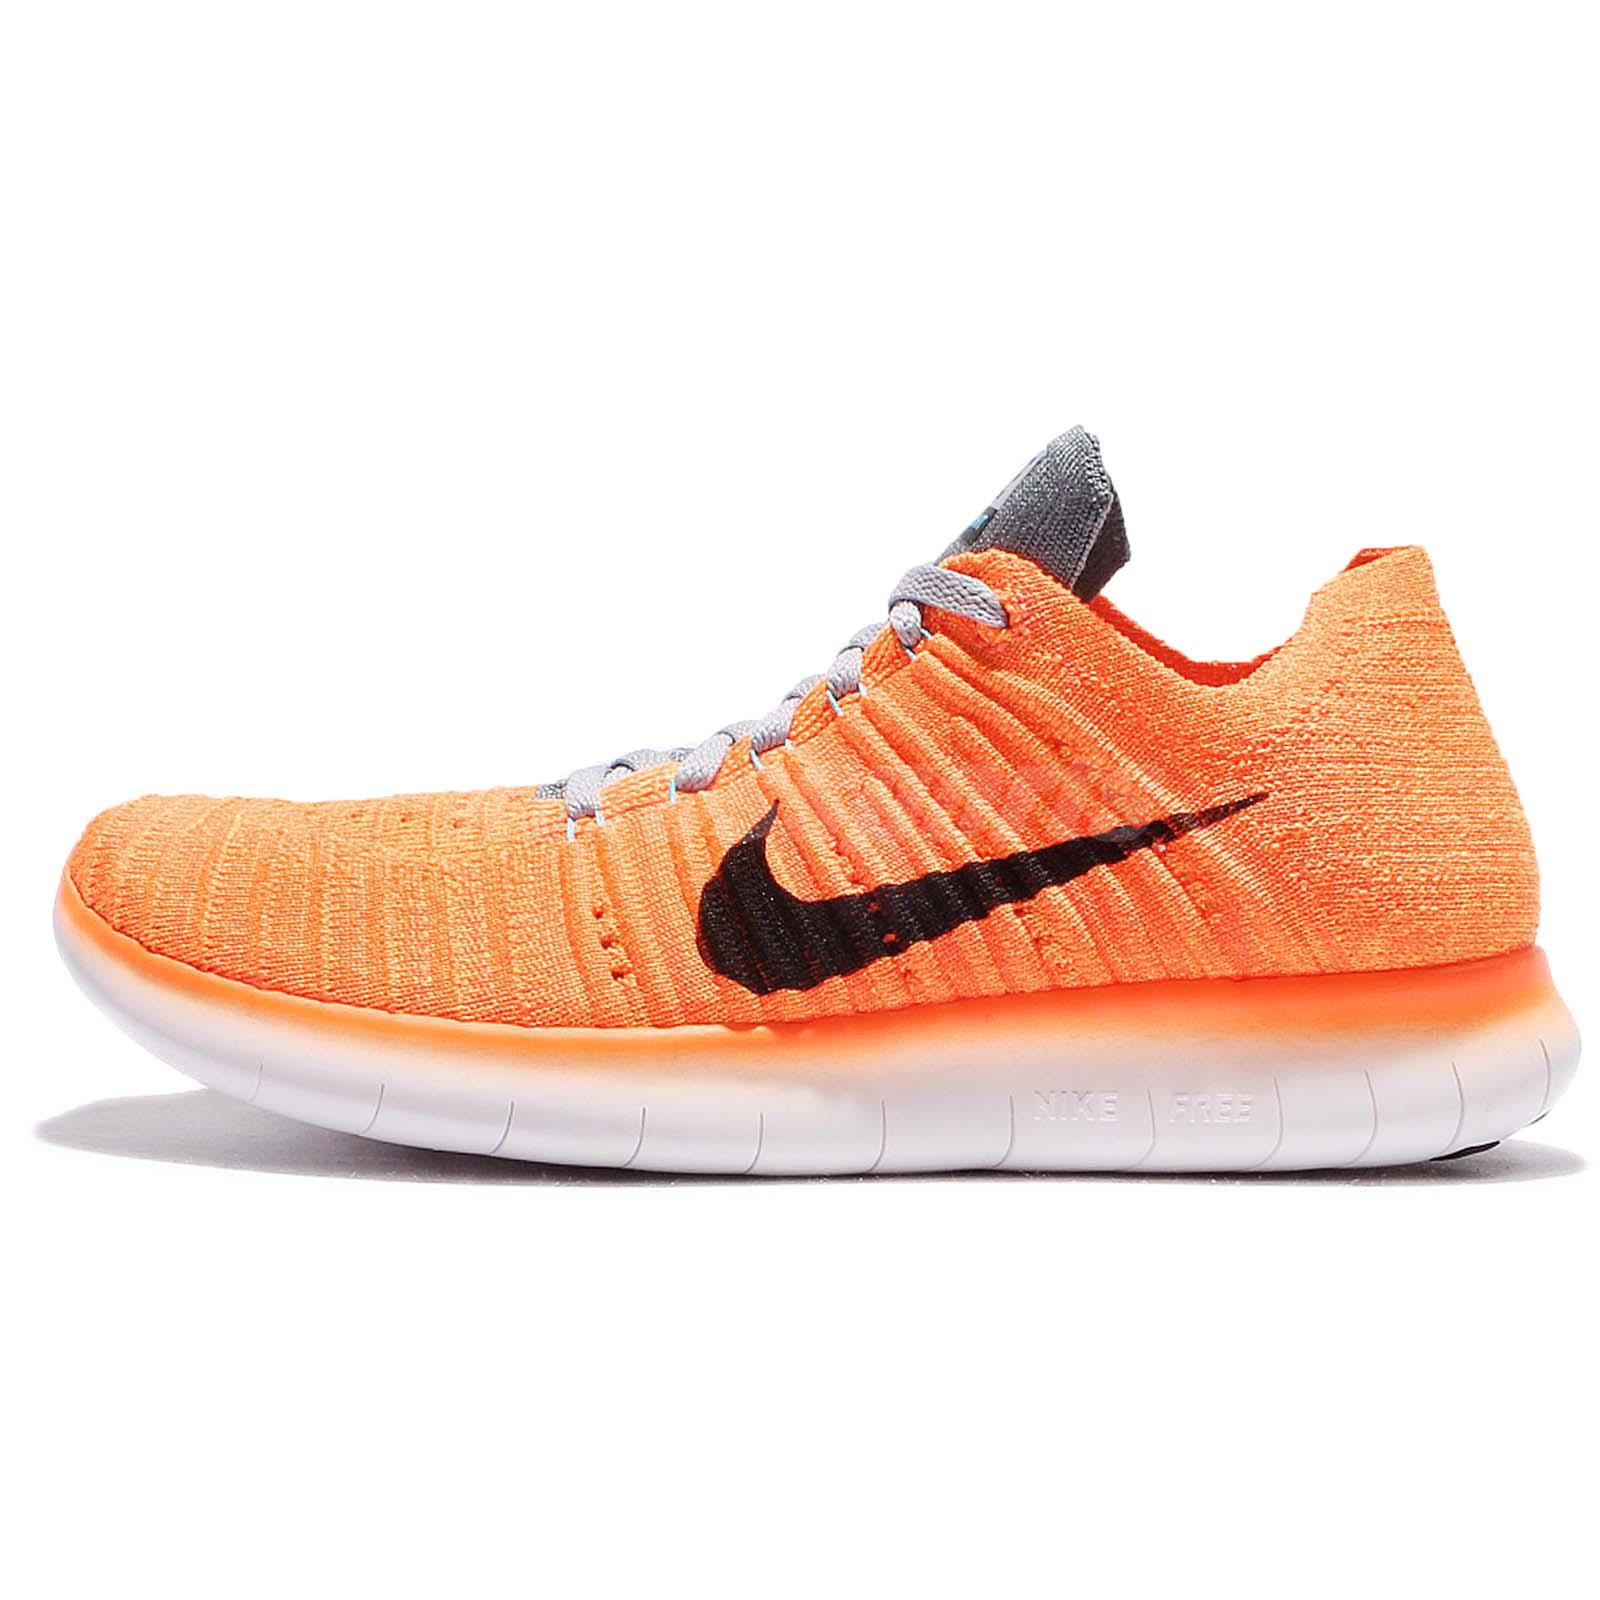 Cool Nike Free Run 3.0 V4 Orange Grey Womens Unique Running Shoes-hot Orange Womens Free Run 3.0 V4 ...